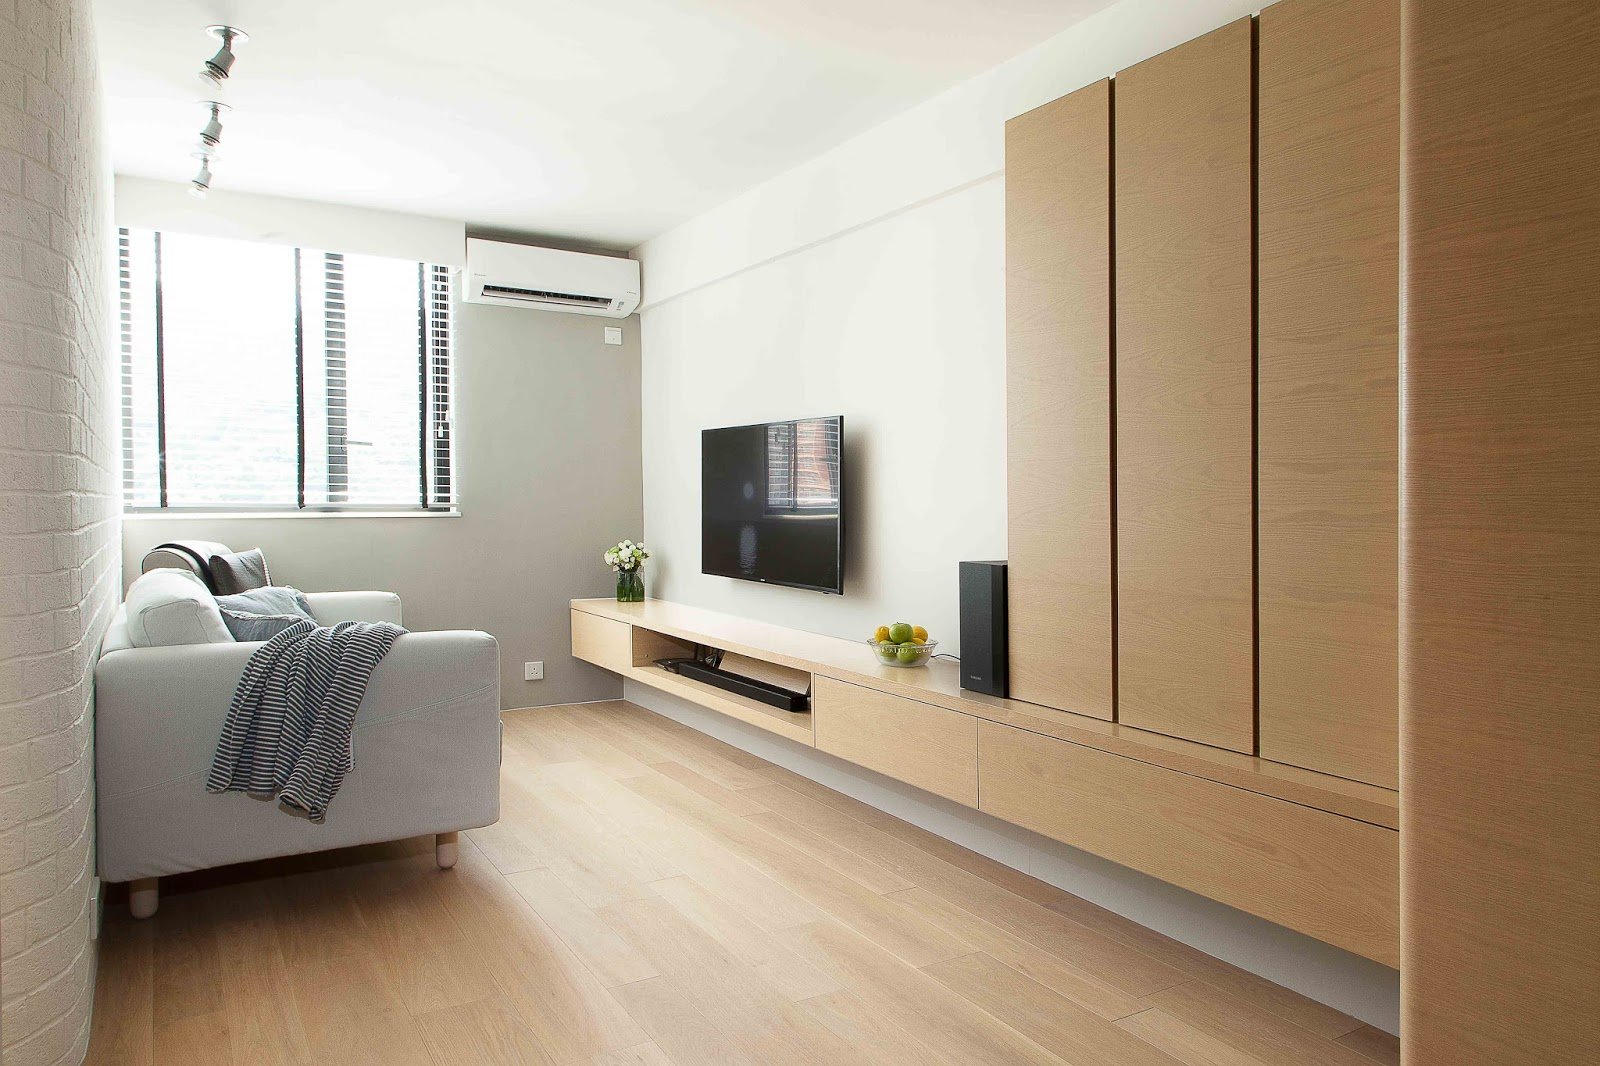 japanese minimalist furniture. Coming Up With The Design For This Apartment In High Street, Clifton Drew Inspiration From Japanese Minimalism And Colonial Grandeur Through Use Of A Minimalist Furniture N